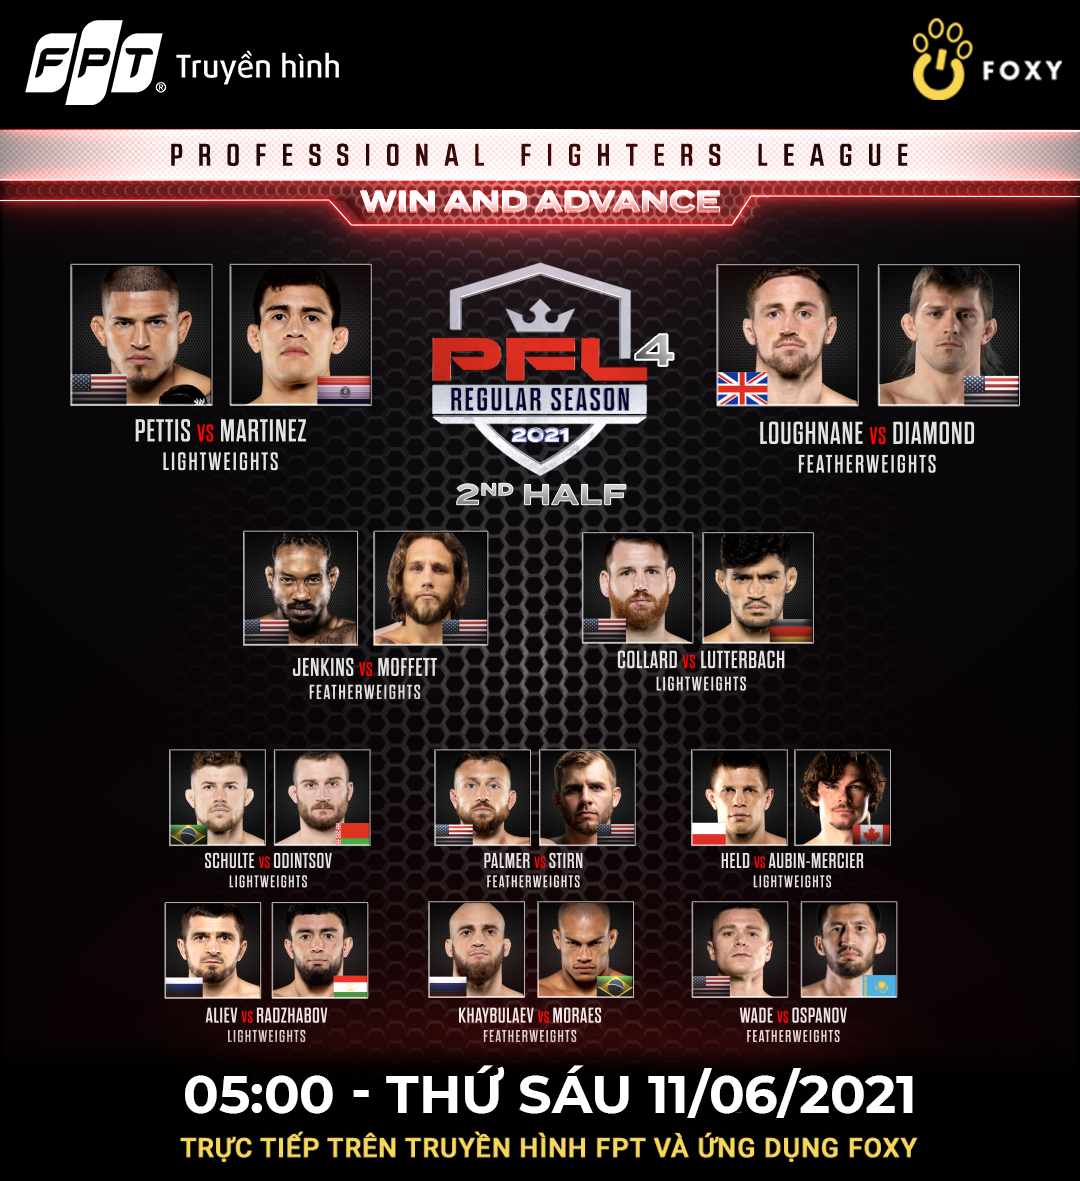 The MMA Professional Fighters League continues with top-notch fights